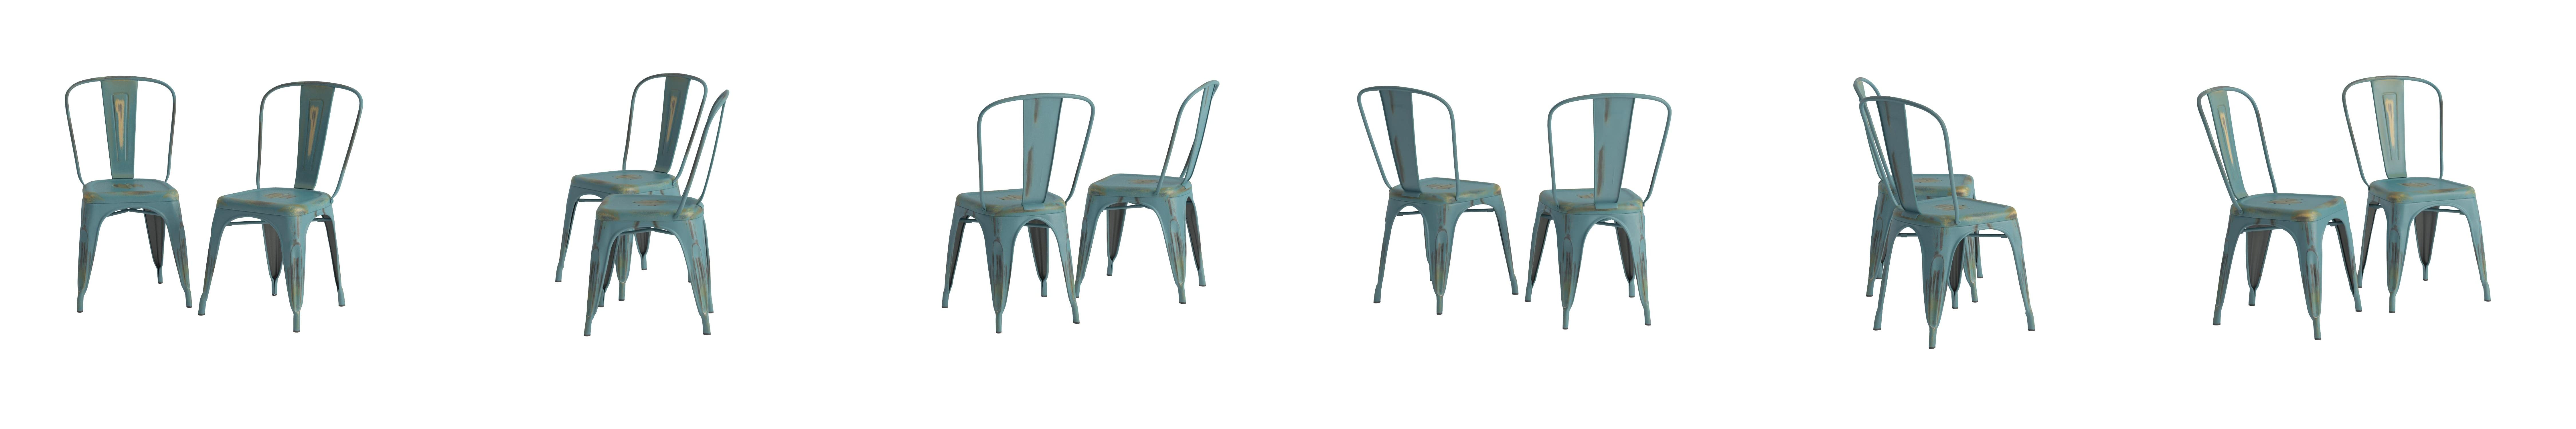 Adeco metal stackable industrial chic dining bistro cafe side chairs - Amazon Com Adeco Metal Stackable Industrial Chic Dining Bistro Cafe Side Chairs Antique Set Of 2 Chairs